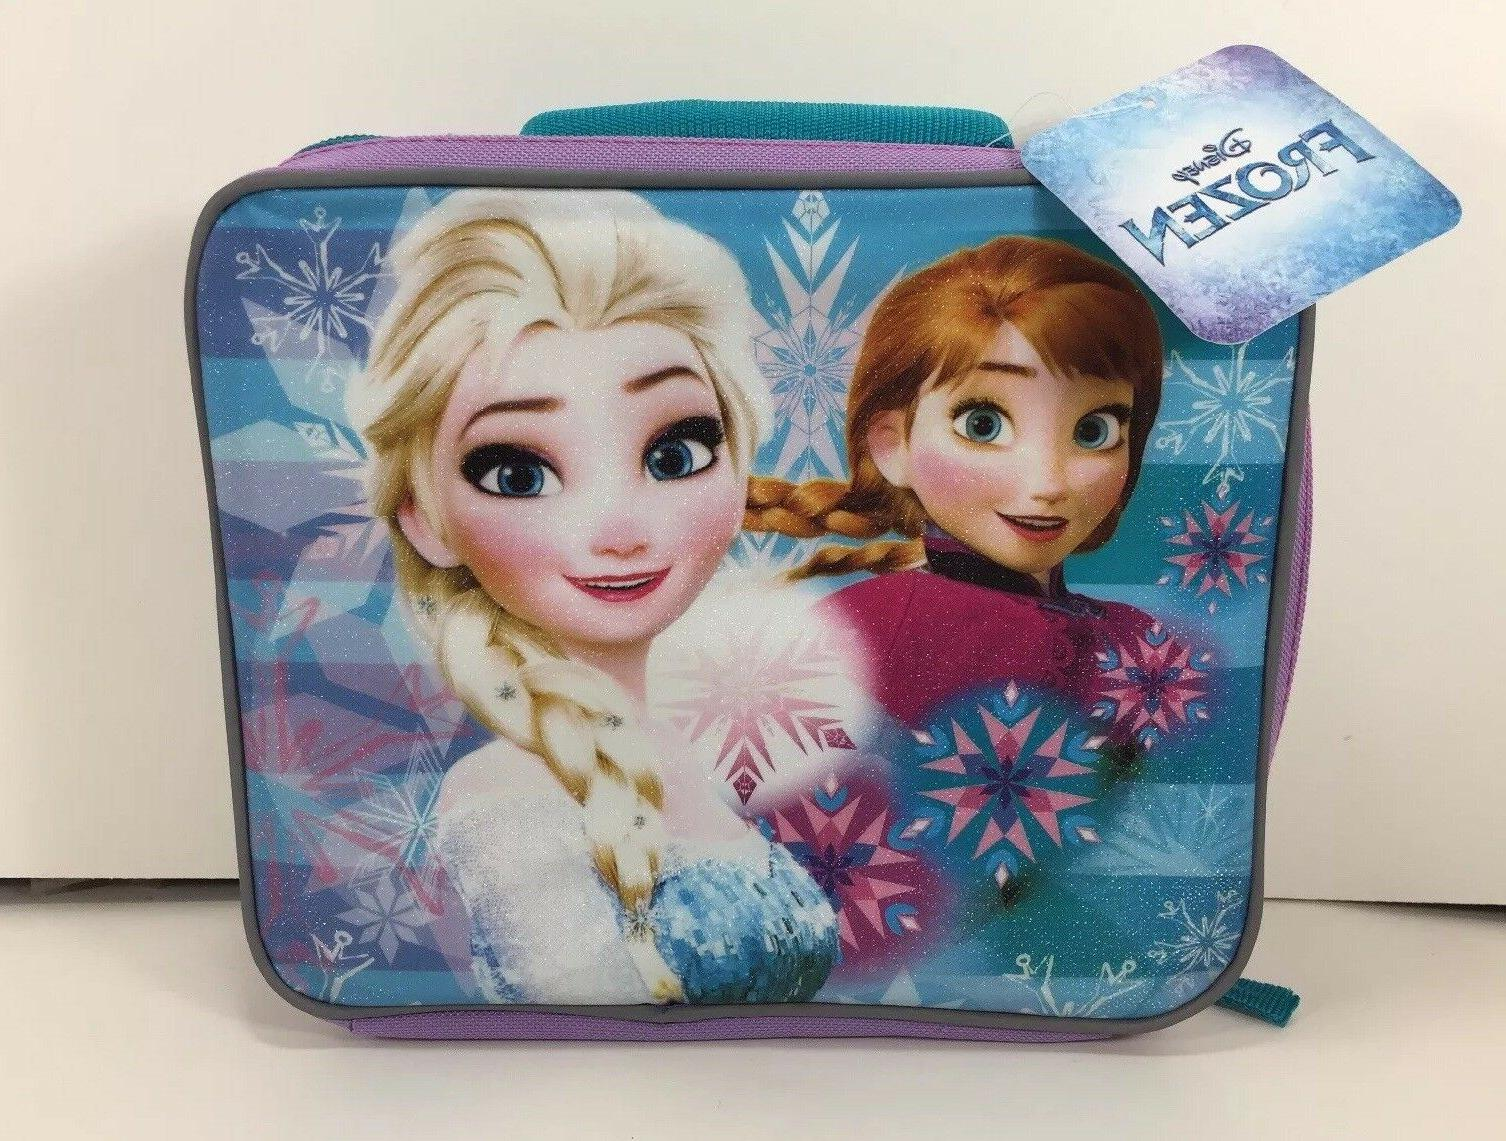 NEW Frozen BAG Mini Toddler Case Party Gift